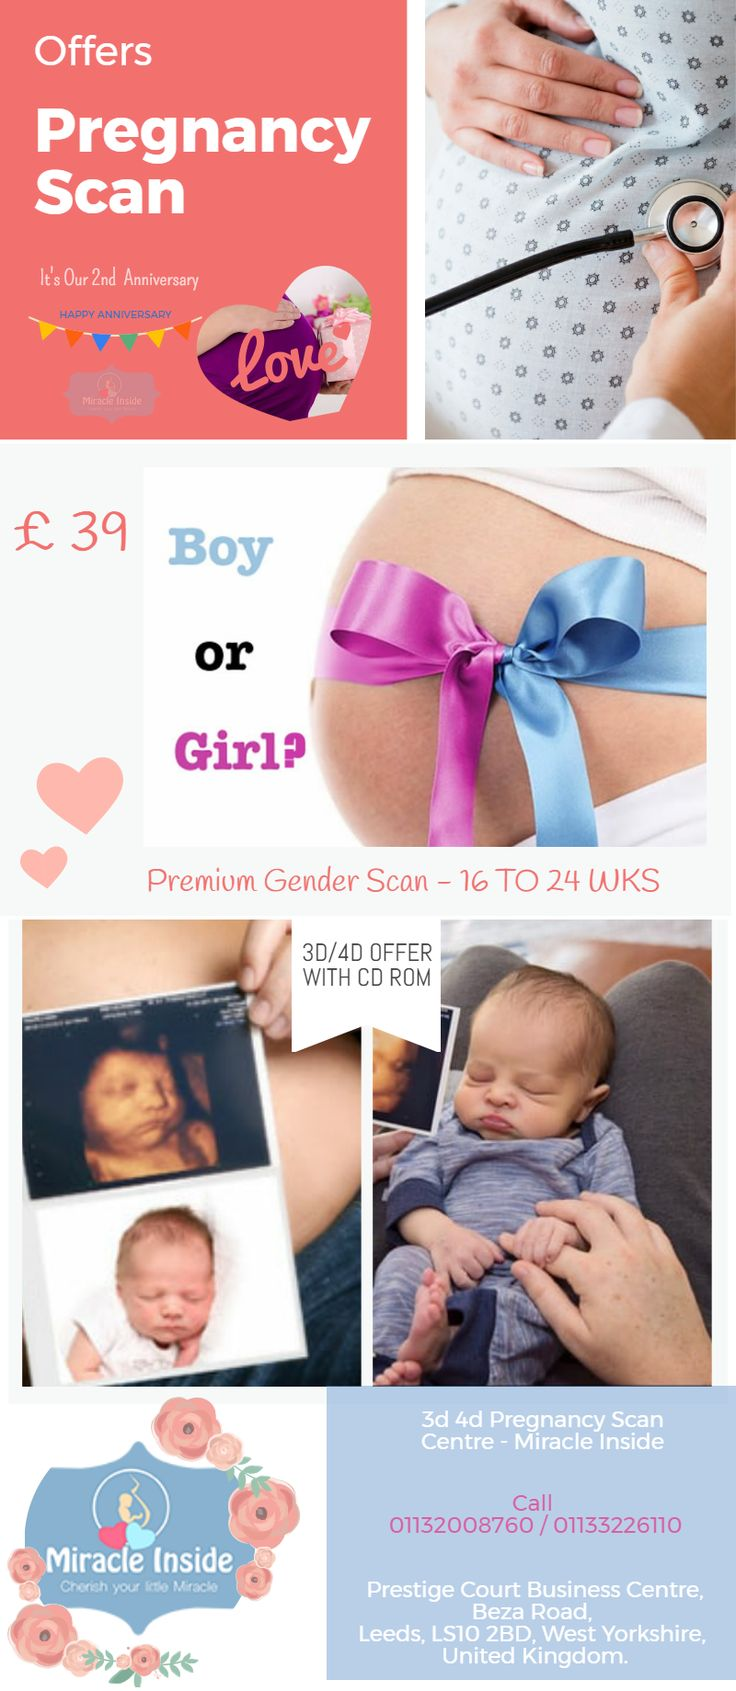 Get discounts on Miracle Inside's Pregnancy Scan Services in Leeds. #3d4dpregnancyscan #offersinpregnancyscan